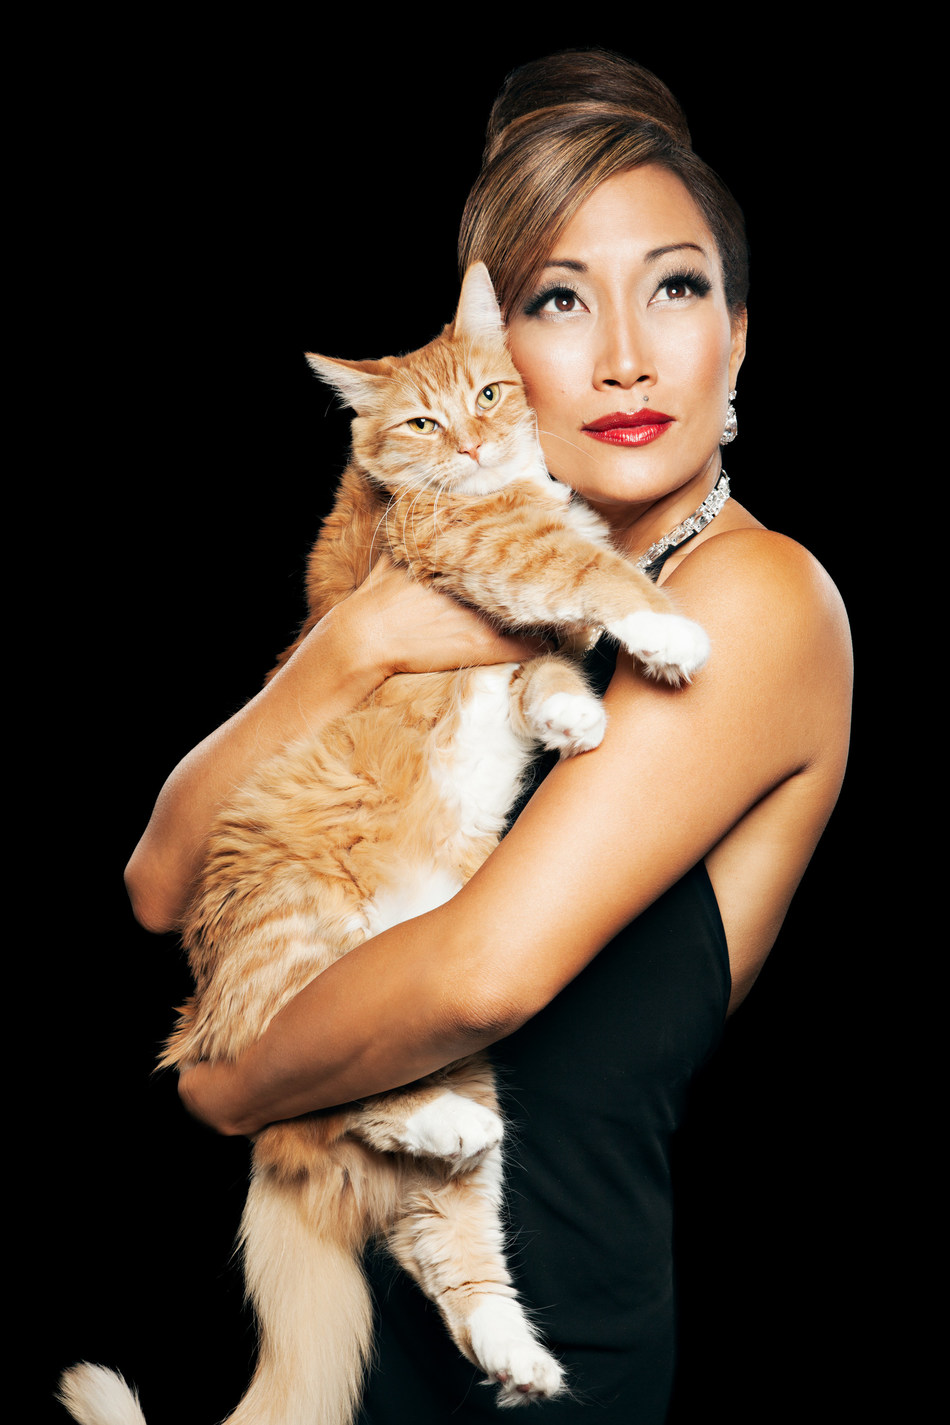 Choreographer and host Carrie Ann Inaba teams up with Royal Canin for its National Take Your Cat To the Vet Day campaign to raise awareness about the importance of preventive veterinary care for cats.  Photo credited to Felix Mack.